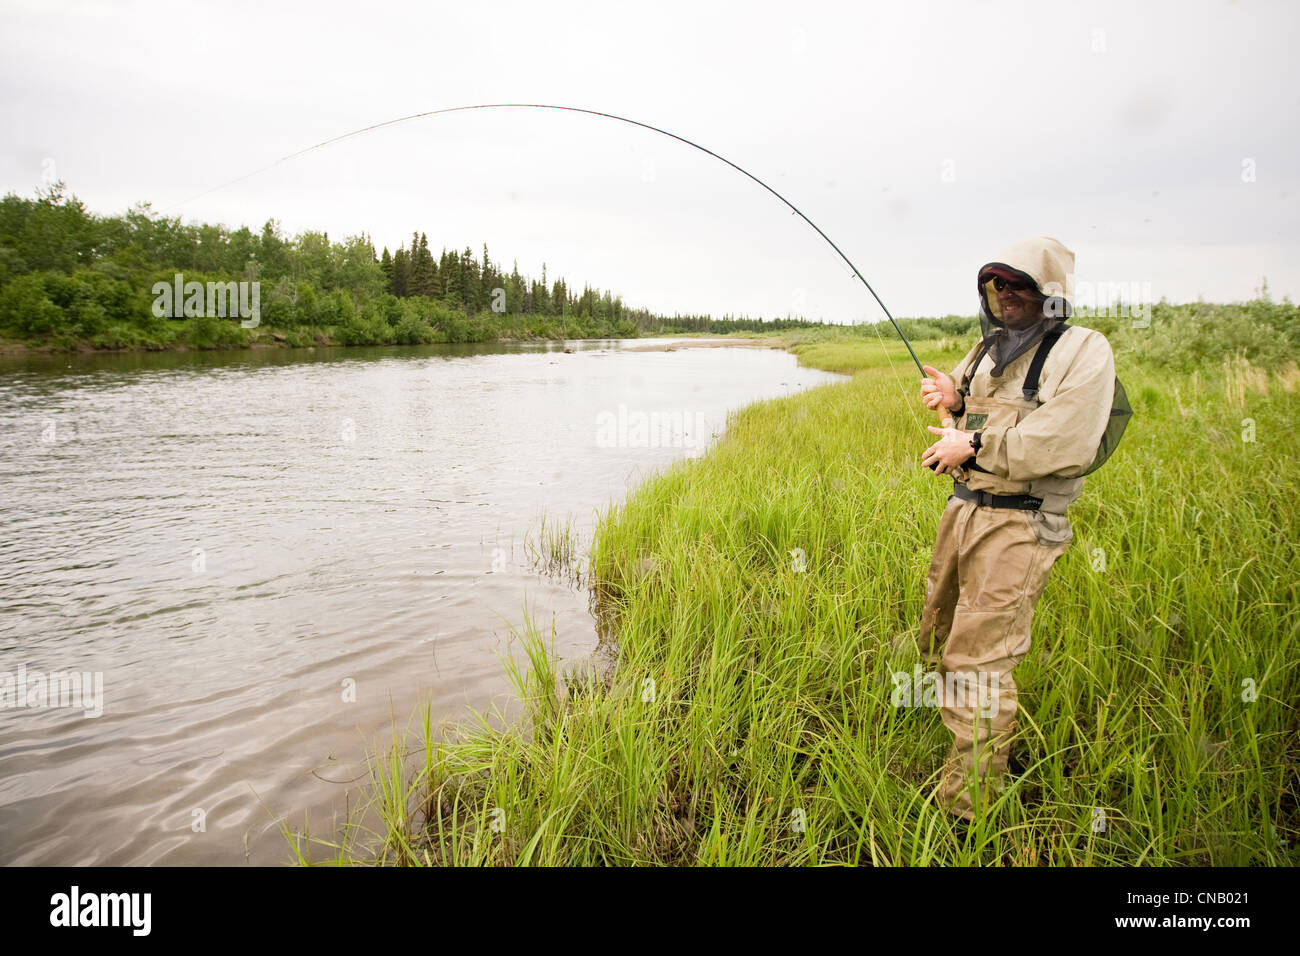 Fly fisherman wearing mosquito protection fishes for salmon on the Mulchatna River in the Bristol Bay area, Alaska Stock Photo